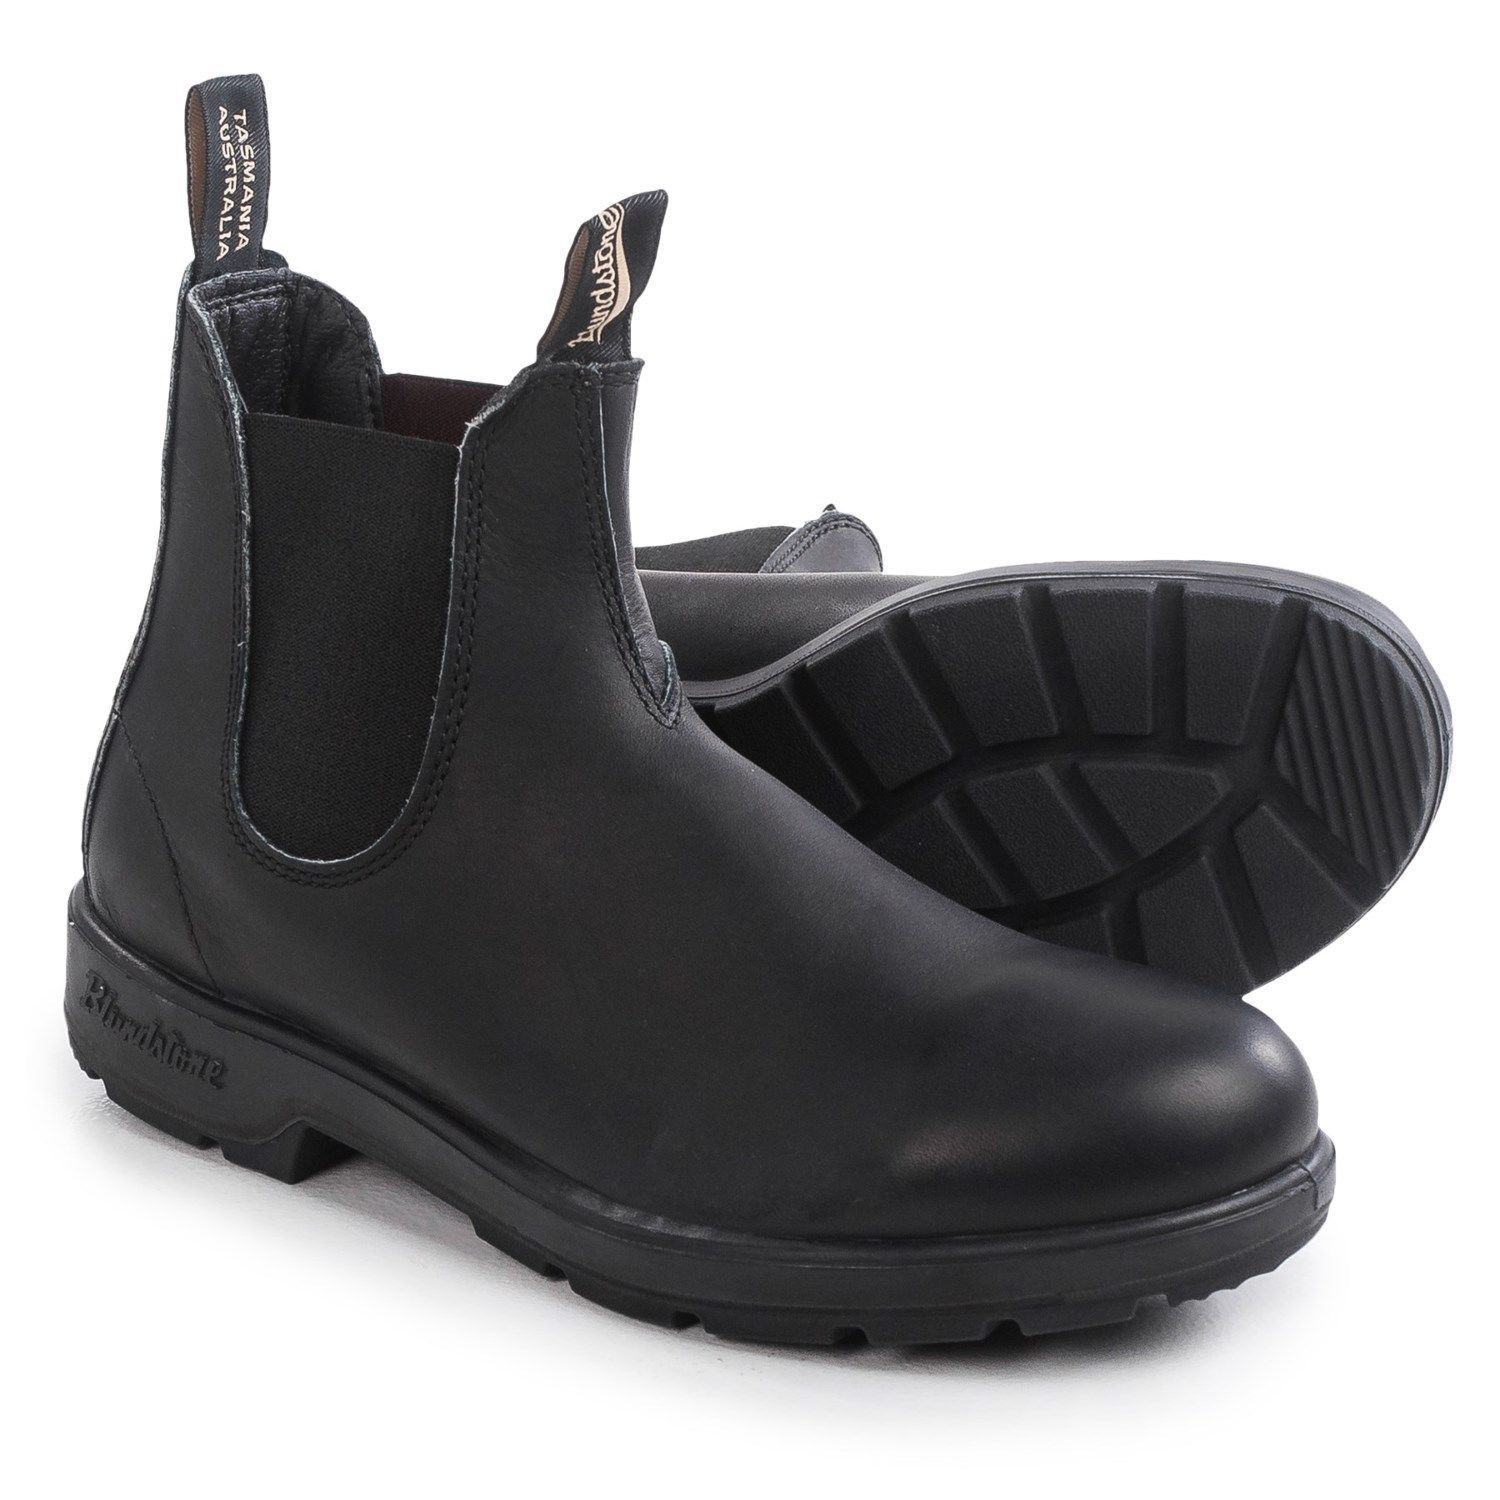 b861c698009 Details about BLUNDSTONE 510 black premium leather non-safety chelsea  dealer boot size 6-13 UK